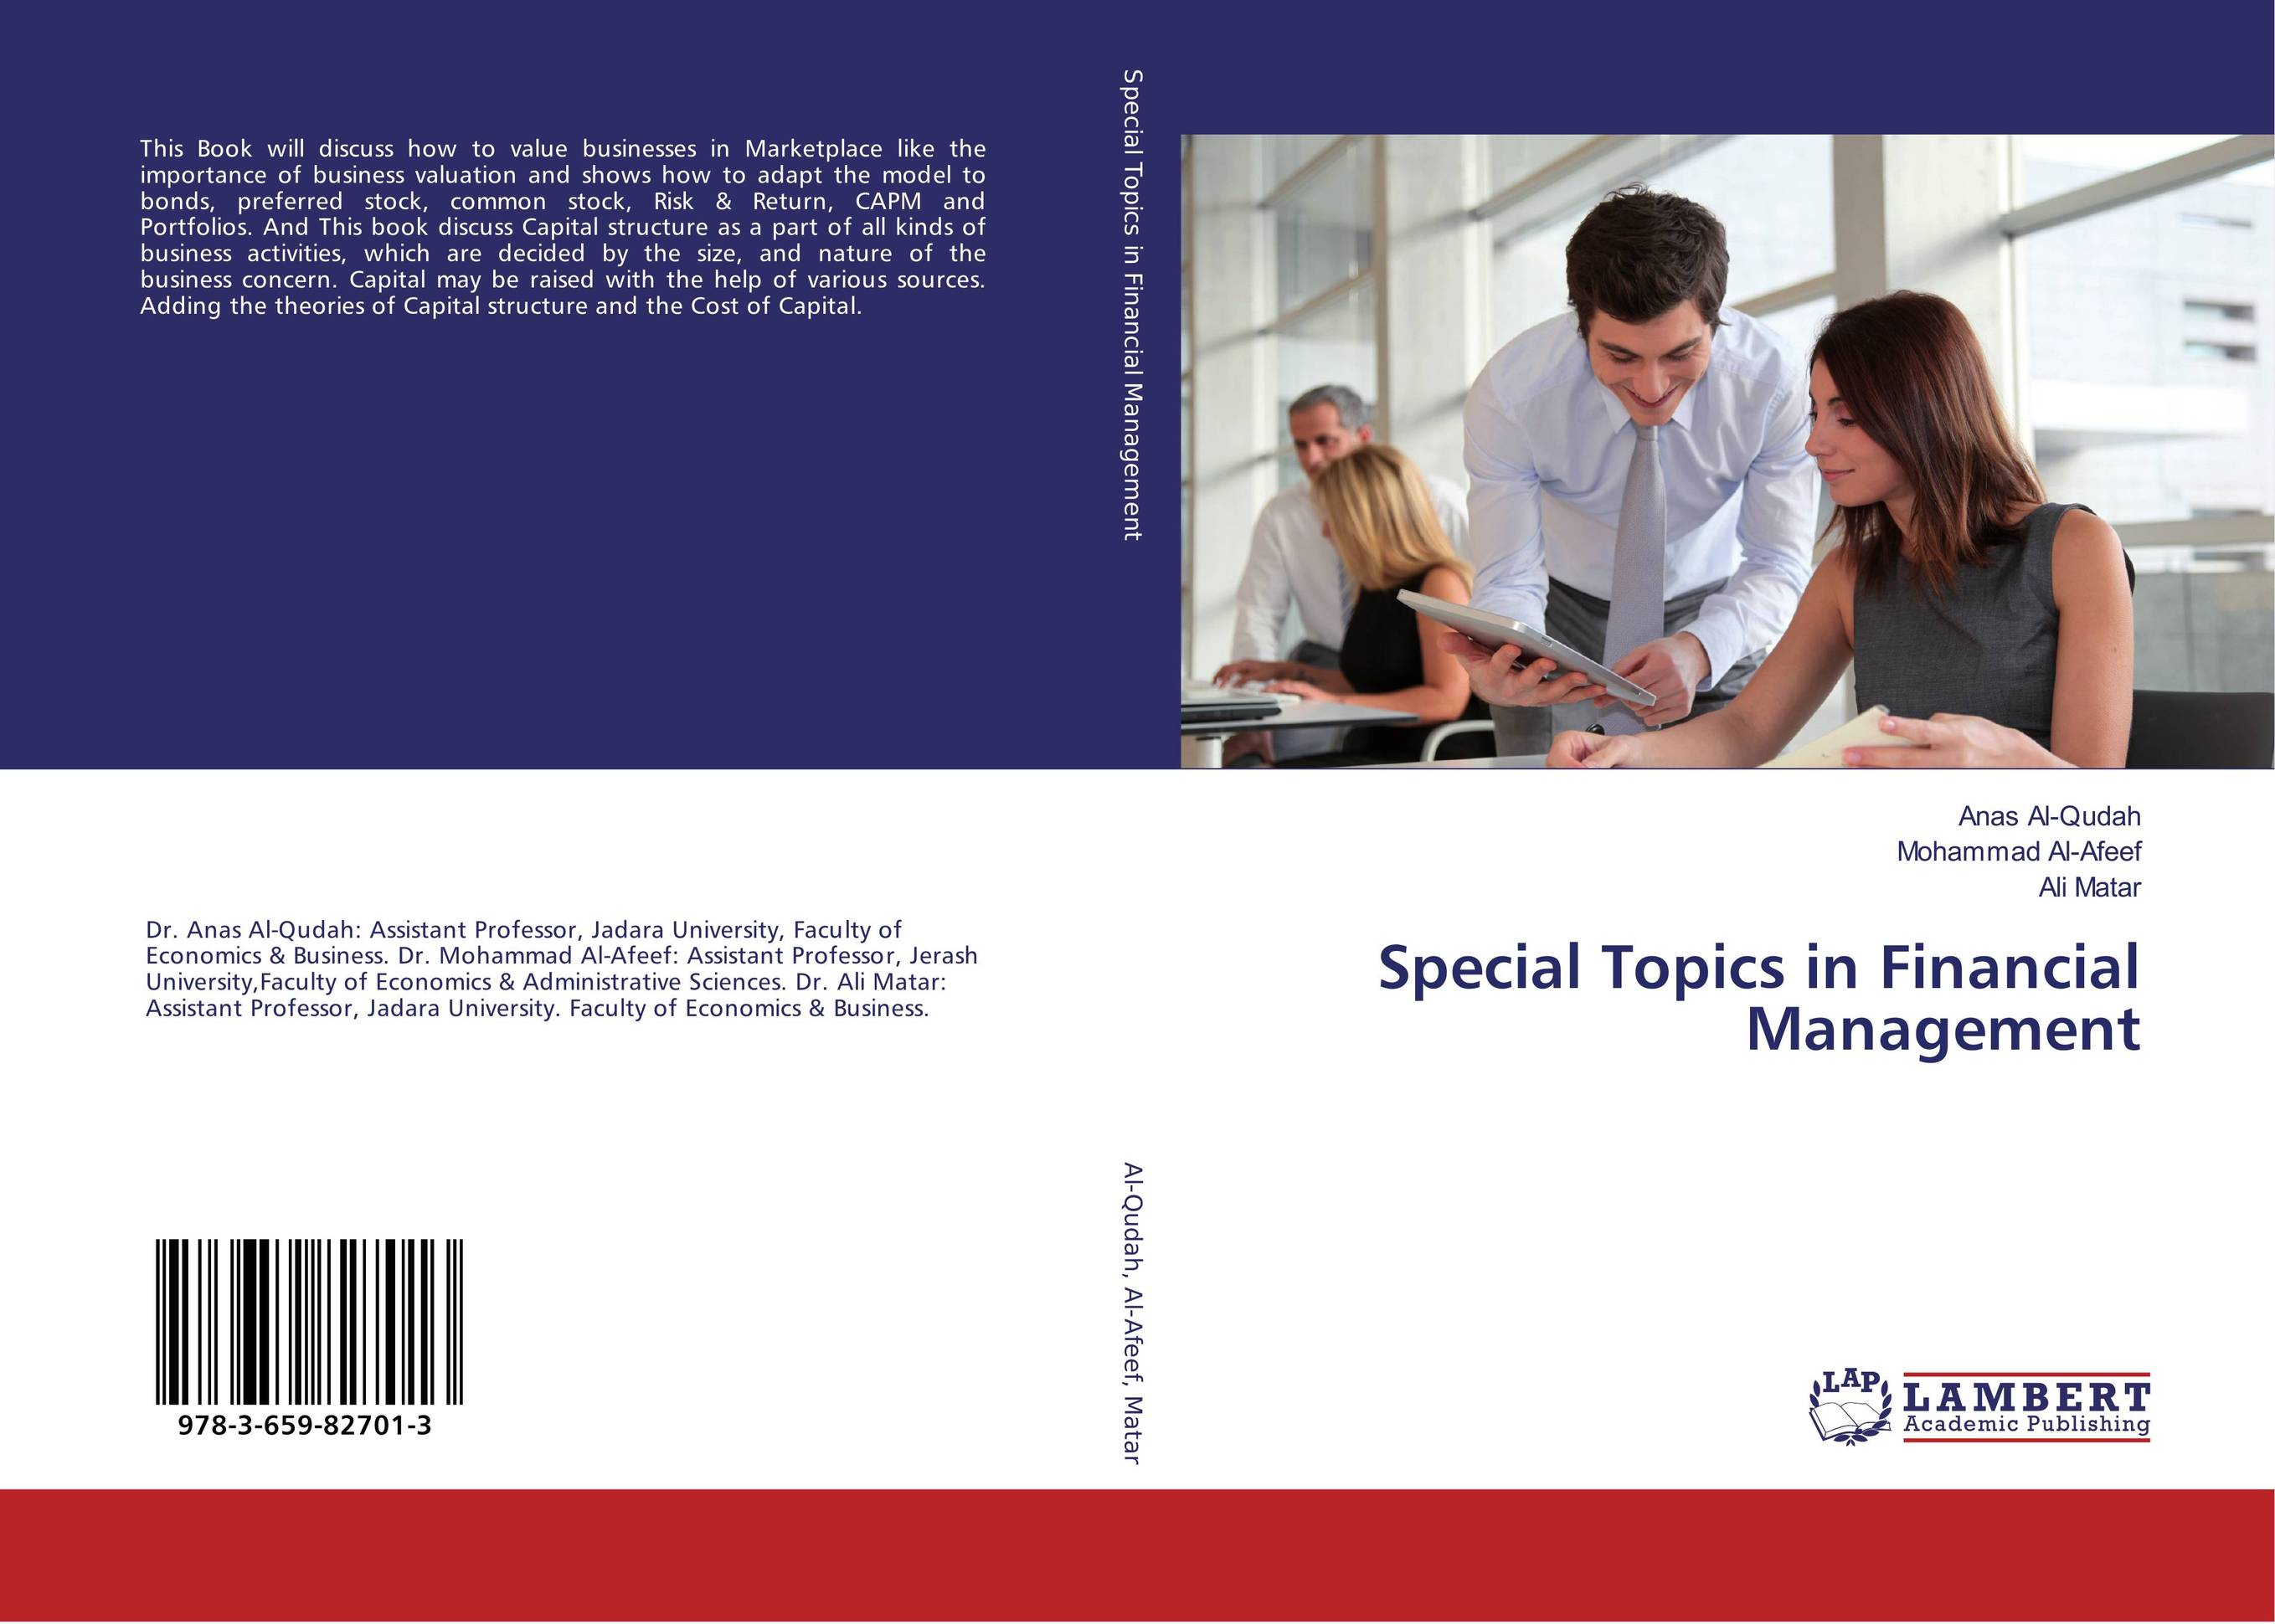 Special Topics in Financial Management